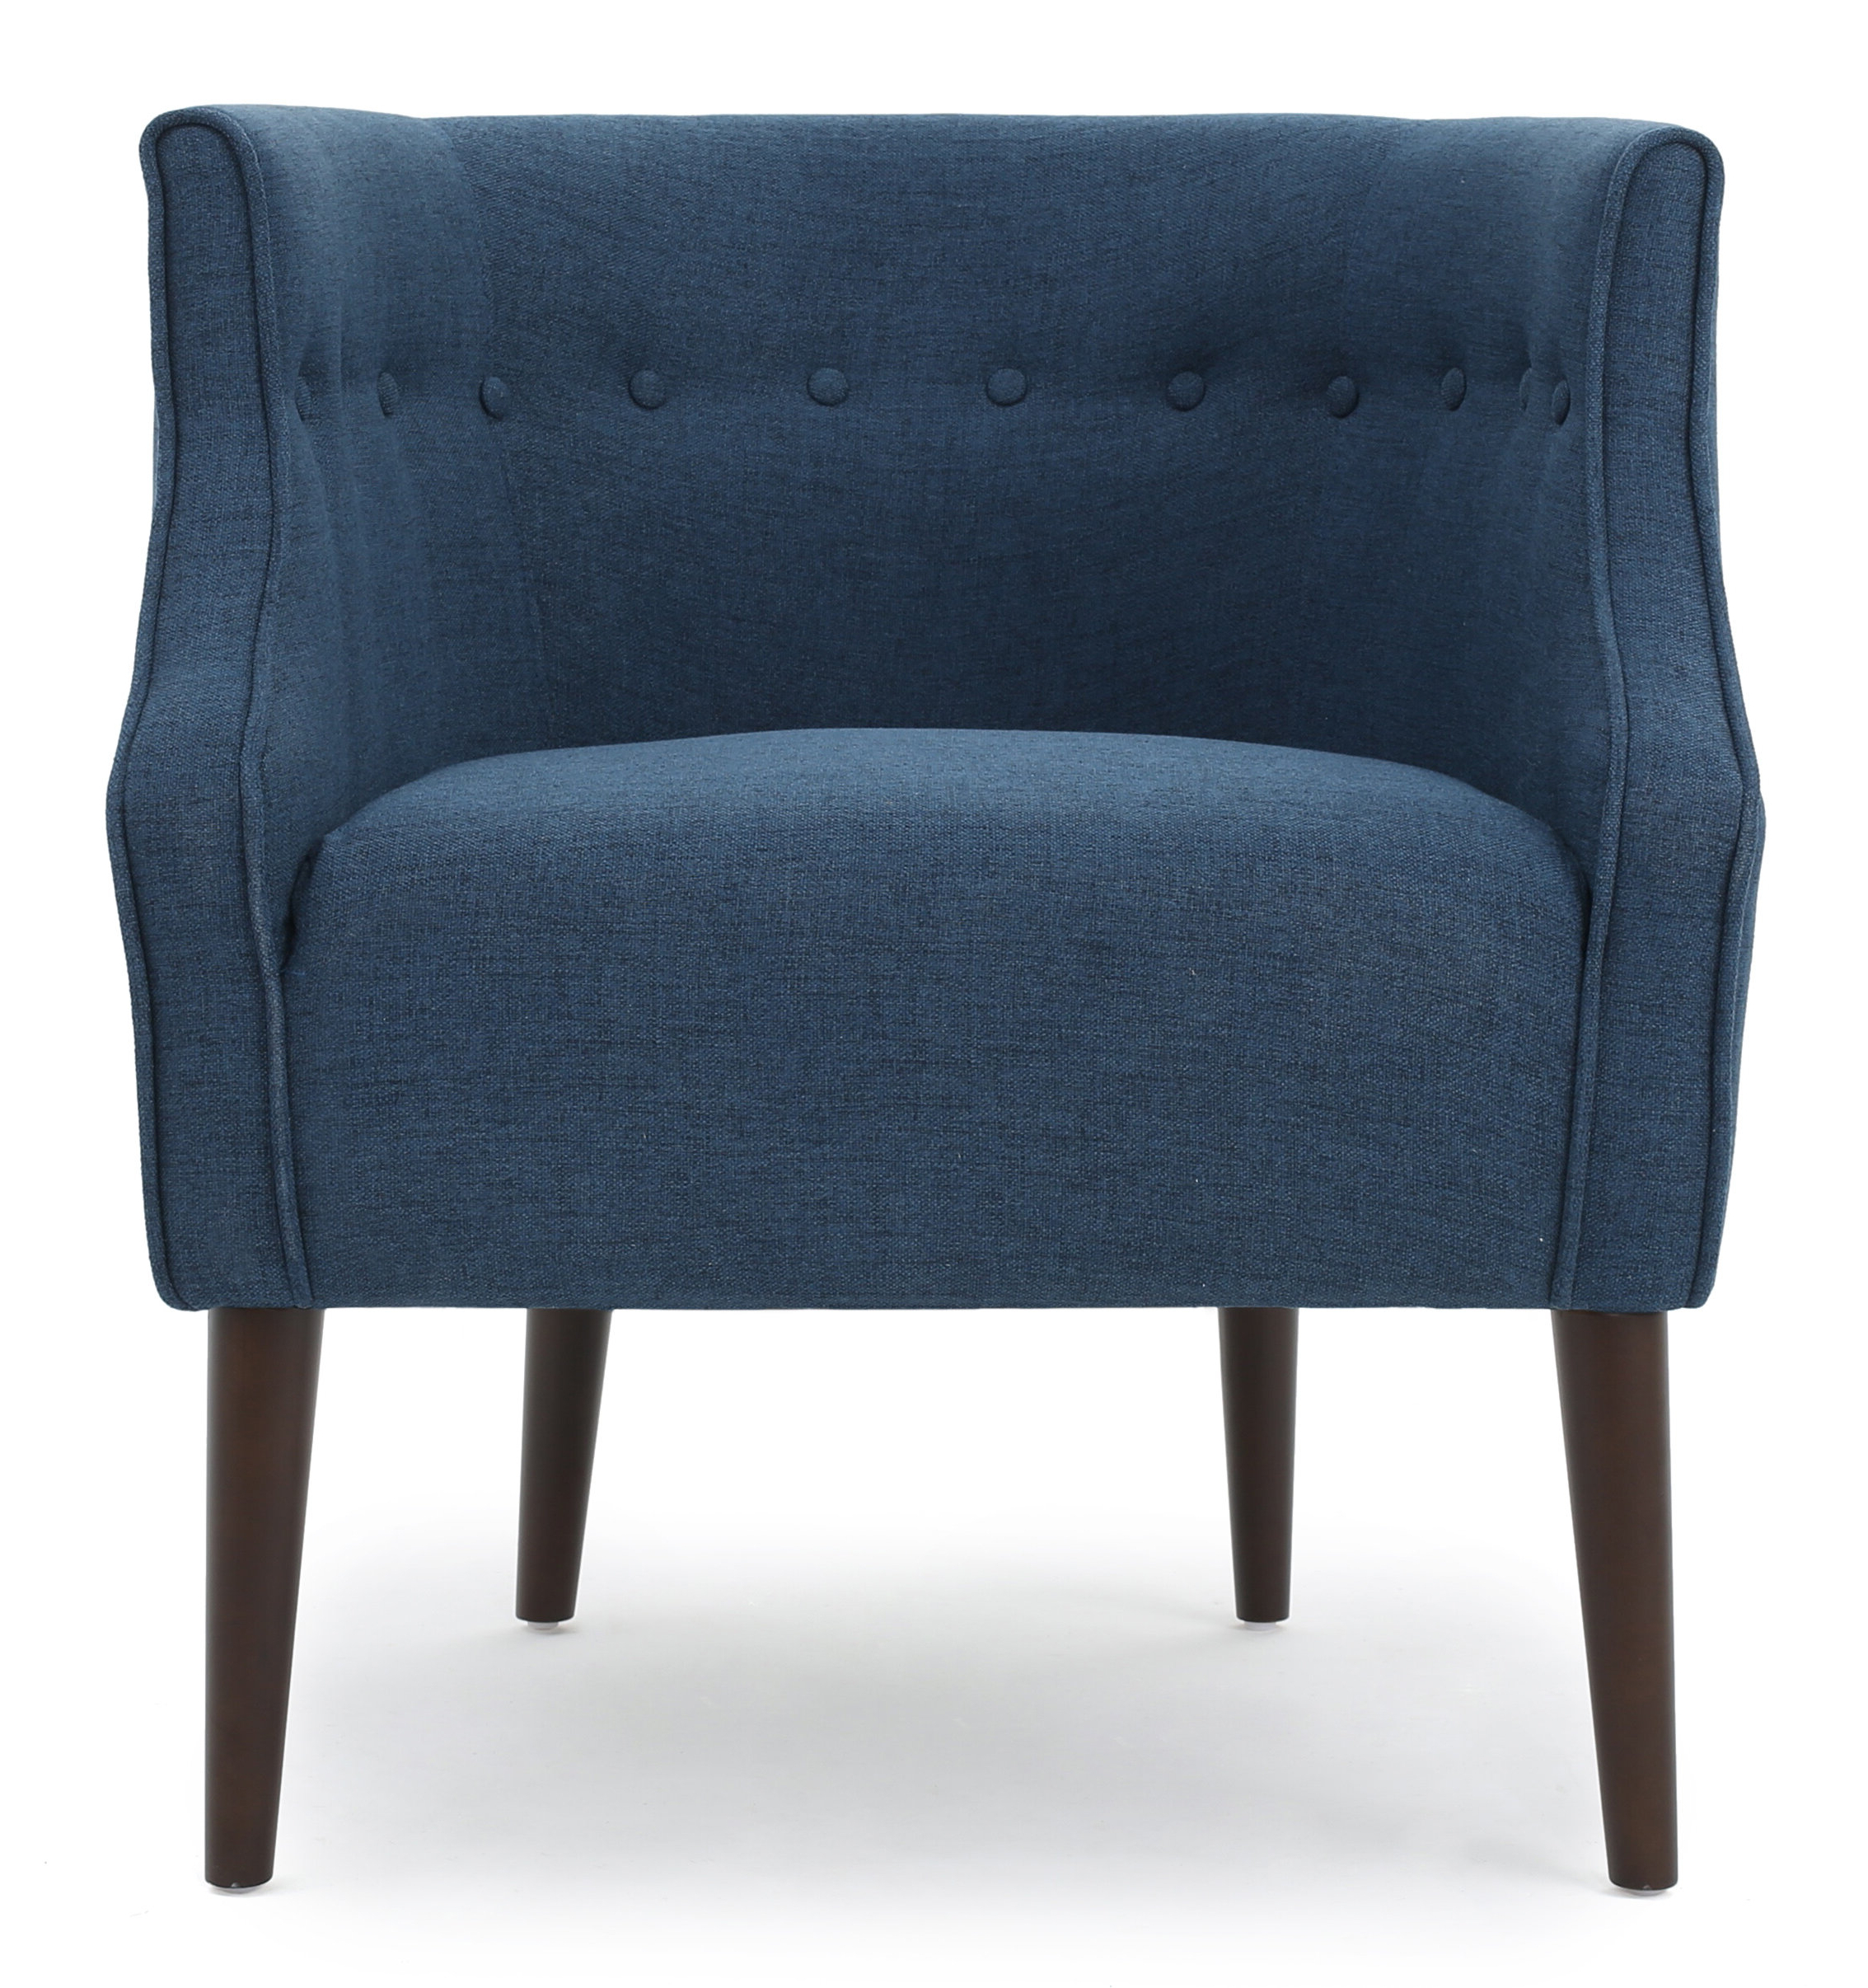 Barrel Mid Century Modern Accent Chairs You'll Love In 2021 With Regard To 2019 Coomer Faux Leather Barrel Chairs (View 7 of 20)